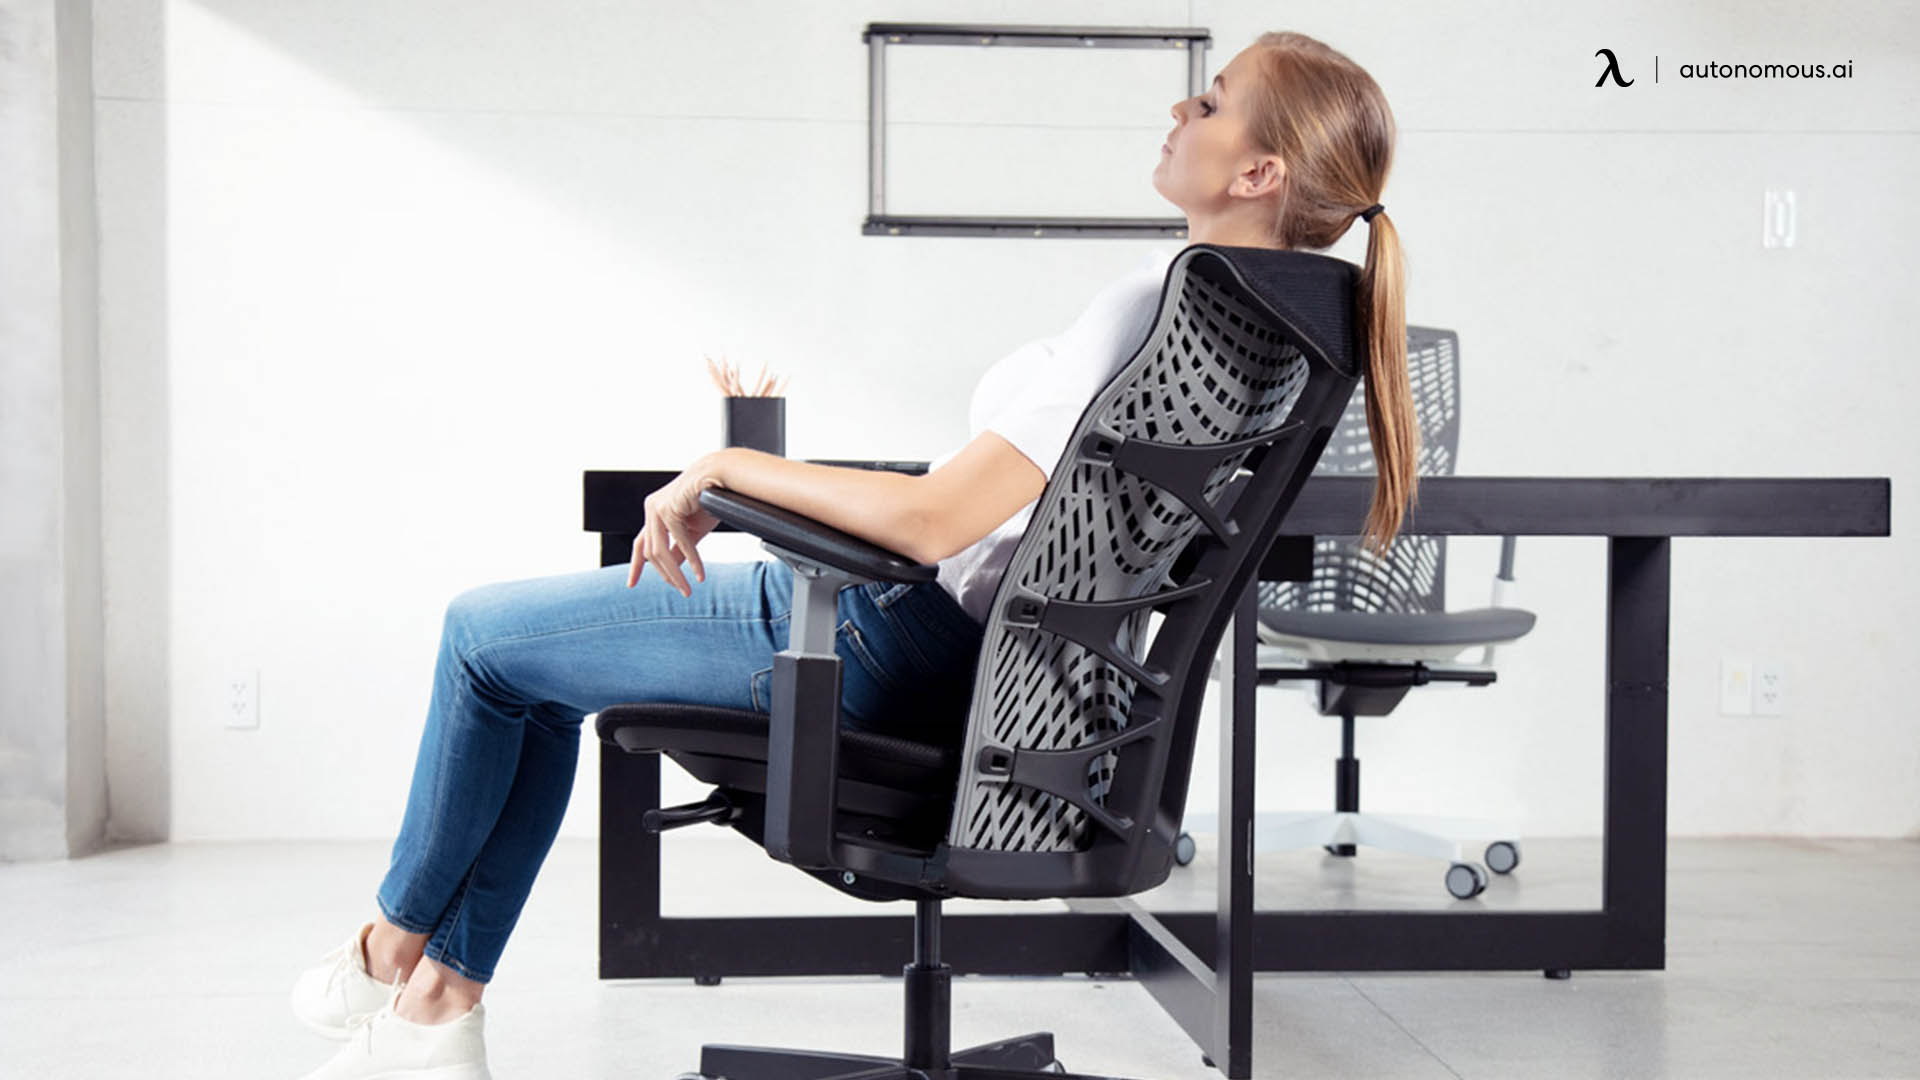 Chair height measurement